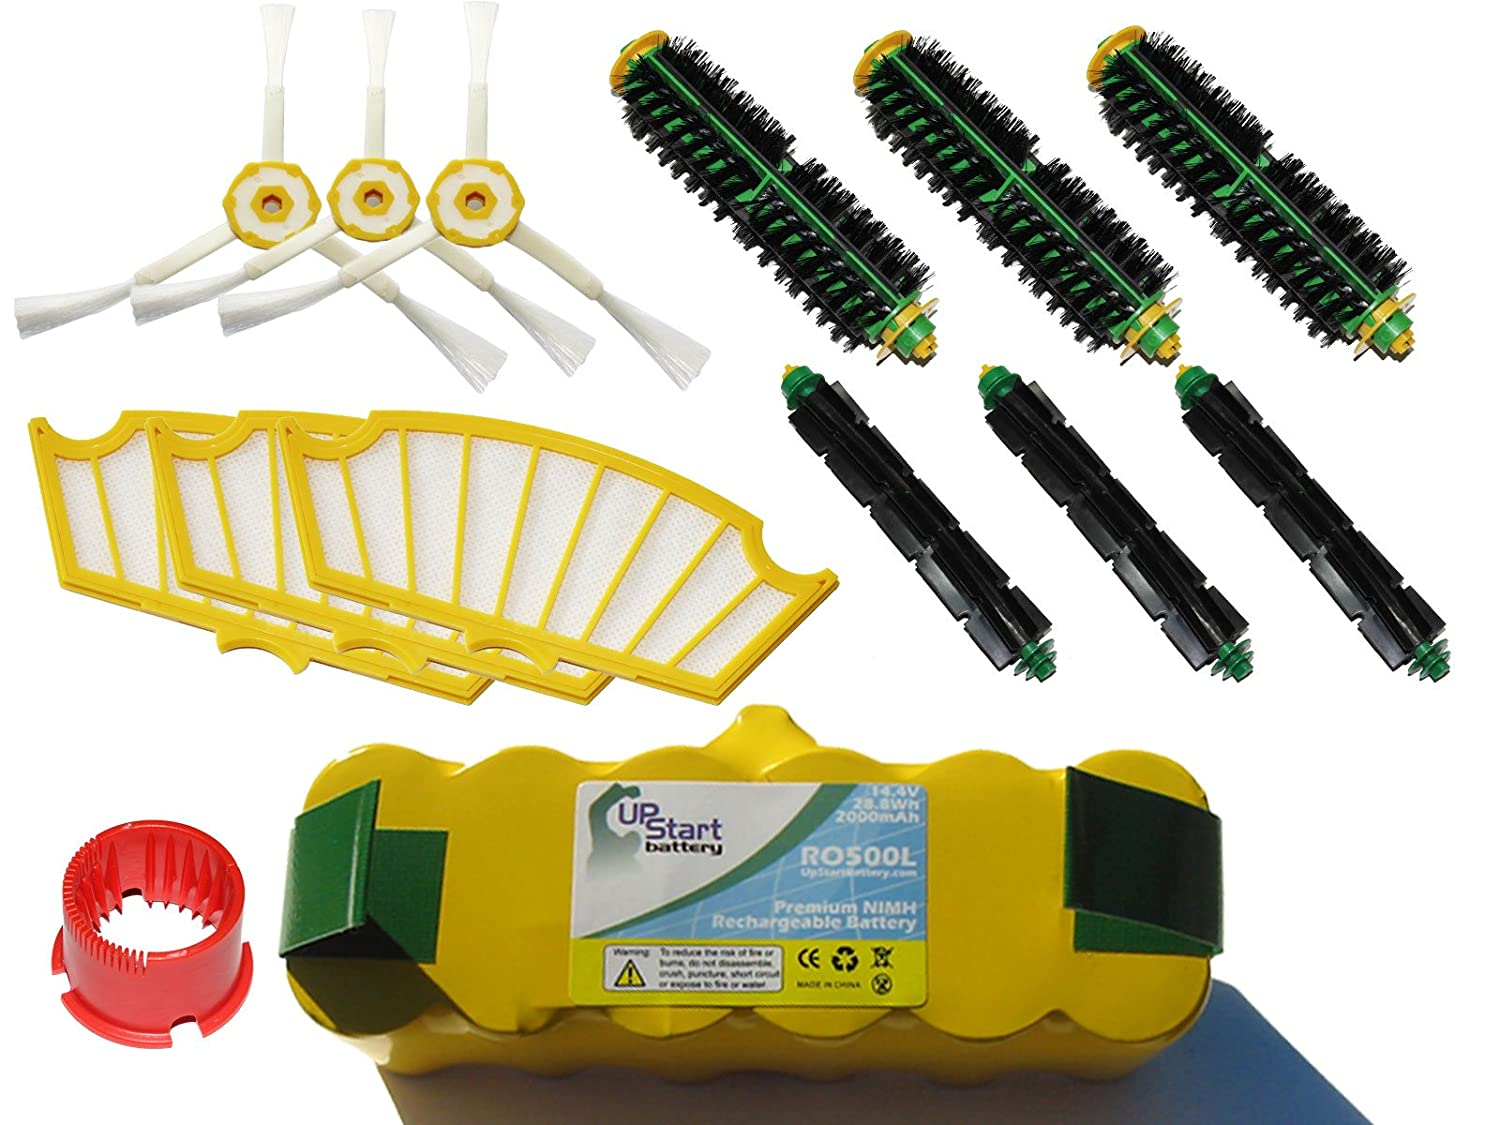 Replacement iRobot Roomba 551 Battery, Filter, Bristle Brush, Flexible Beater Brush, 3-Arm Side Brush and Brush Cleaning Tool - Kit Includes 1 Battery, 3 Filter, 3 Bristle Brush, 3 Flexible Beater Brush, 3 3-Arm Side Brush and 1 Brush Cleaning Tool free post new 3 arms sidebrush filters flexible beater bristle brush kit for irobot roomba vacuum 500 series clean tool